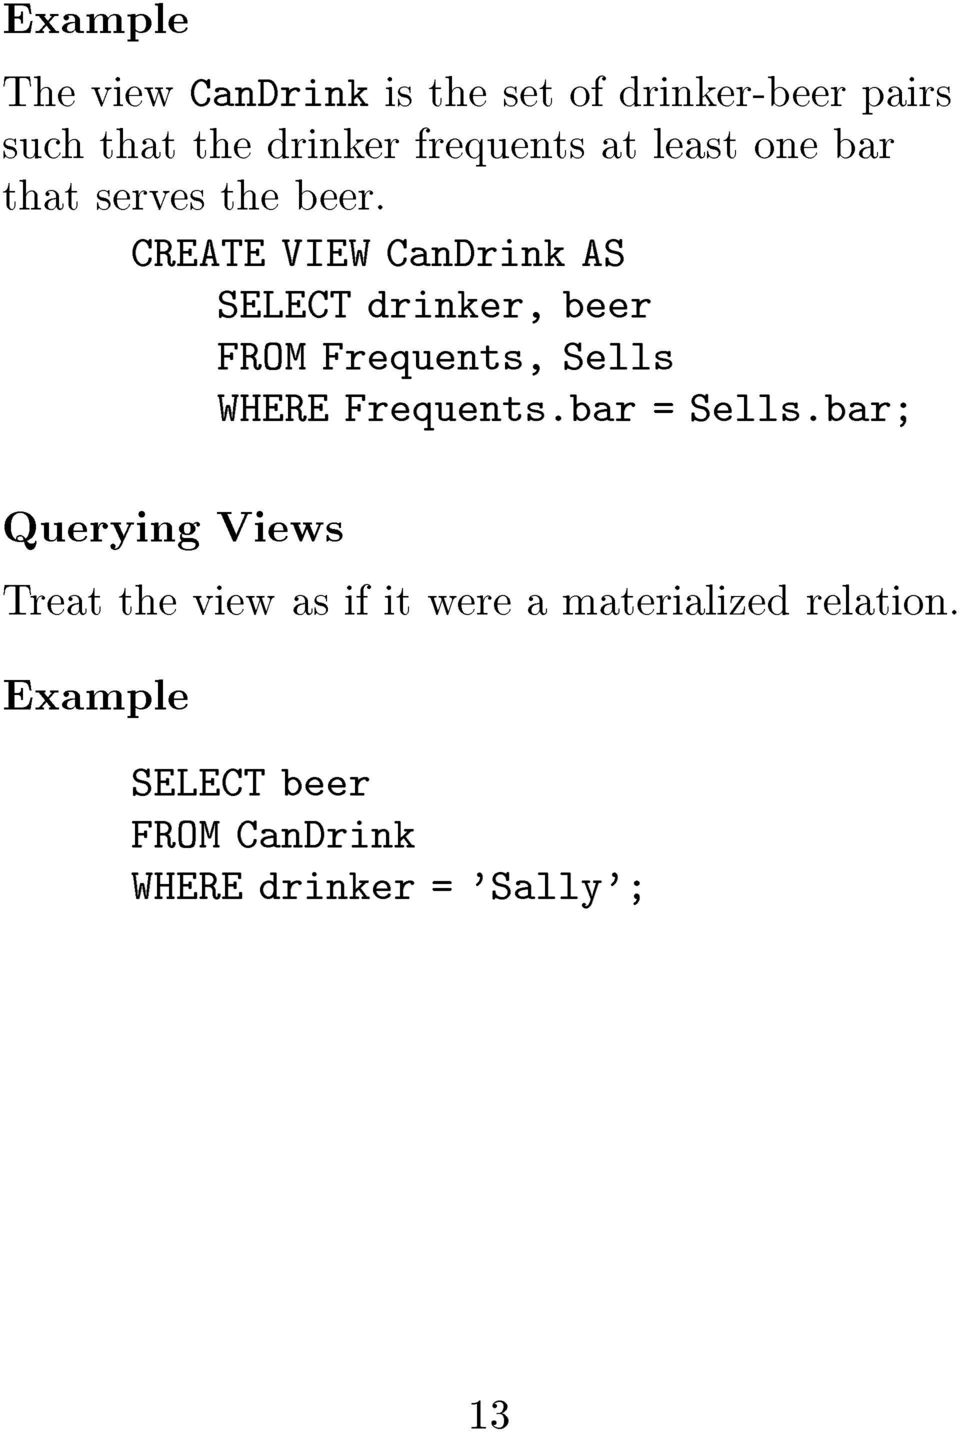 CREATE VIEW CanDrink AS SELECT drinker, beer FROM Frequents, Sells WHERE Frequents.